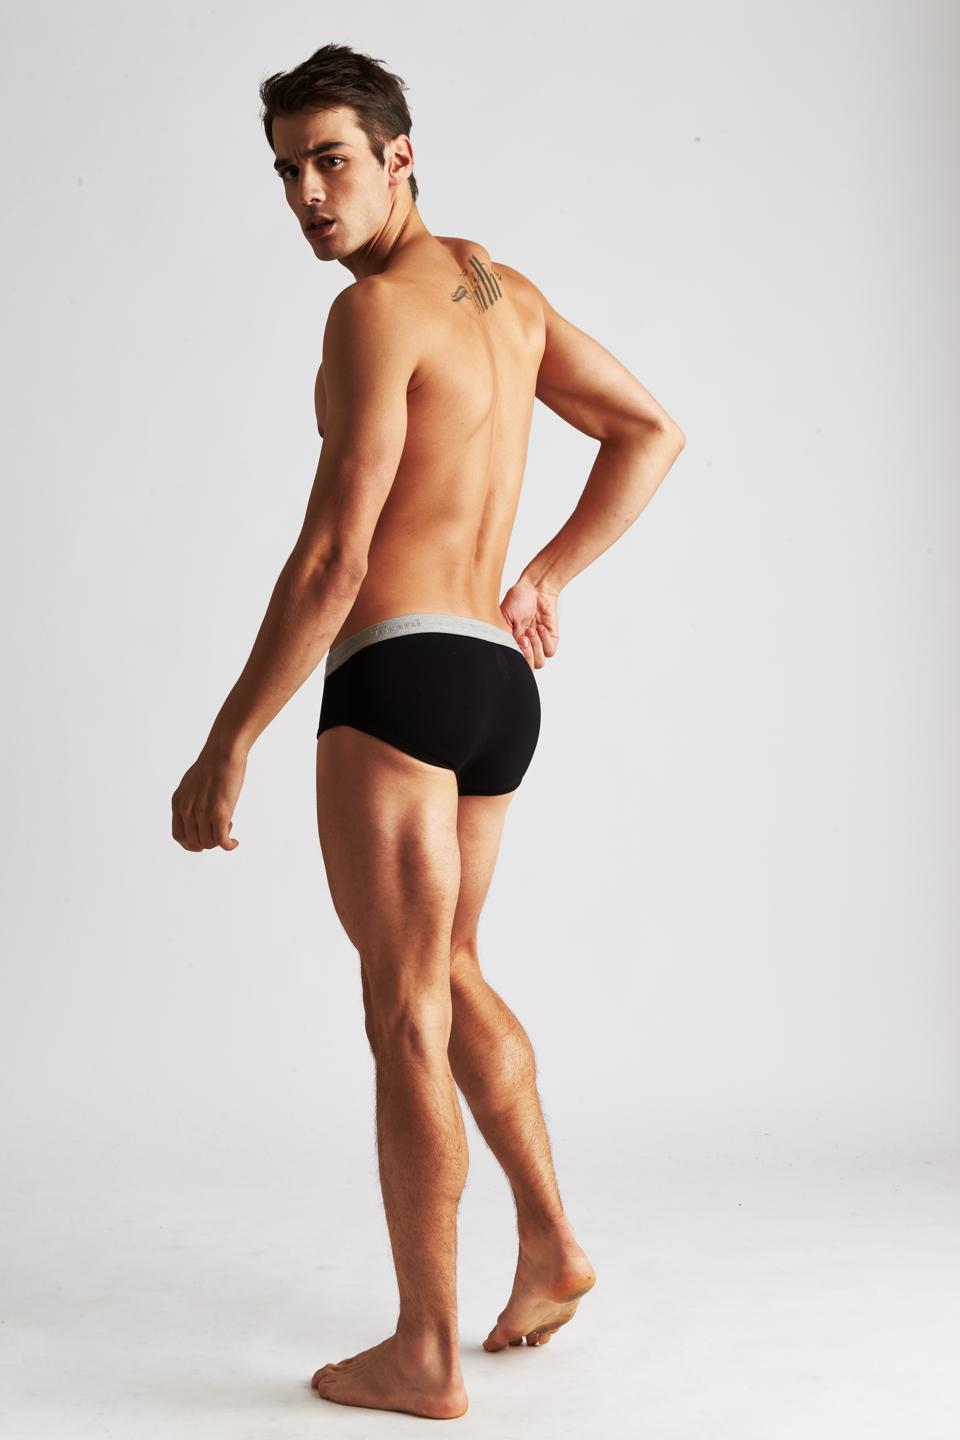 Take yourself to a new level of comfort in Tani SilkCut Hip Briefs. If you are a fan of briefs, these briefs will quickly become your favorite pair.